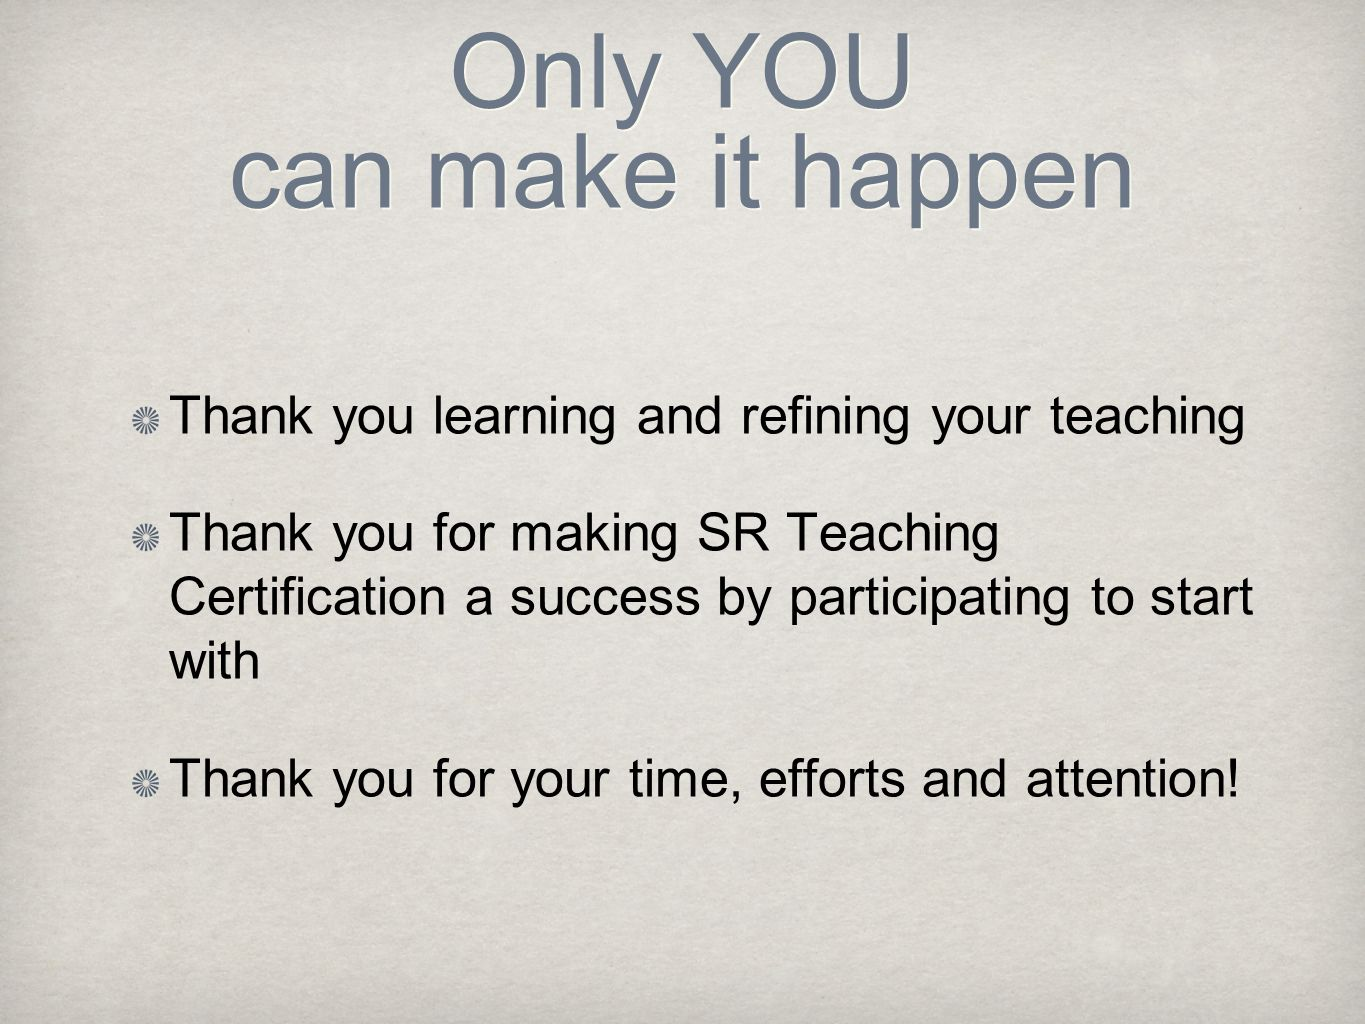 Only YOU can make it happen Thank you learning and refining your teaching Thank you for making SR Teaching Certification a success by participating to